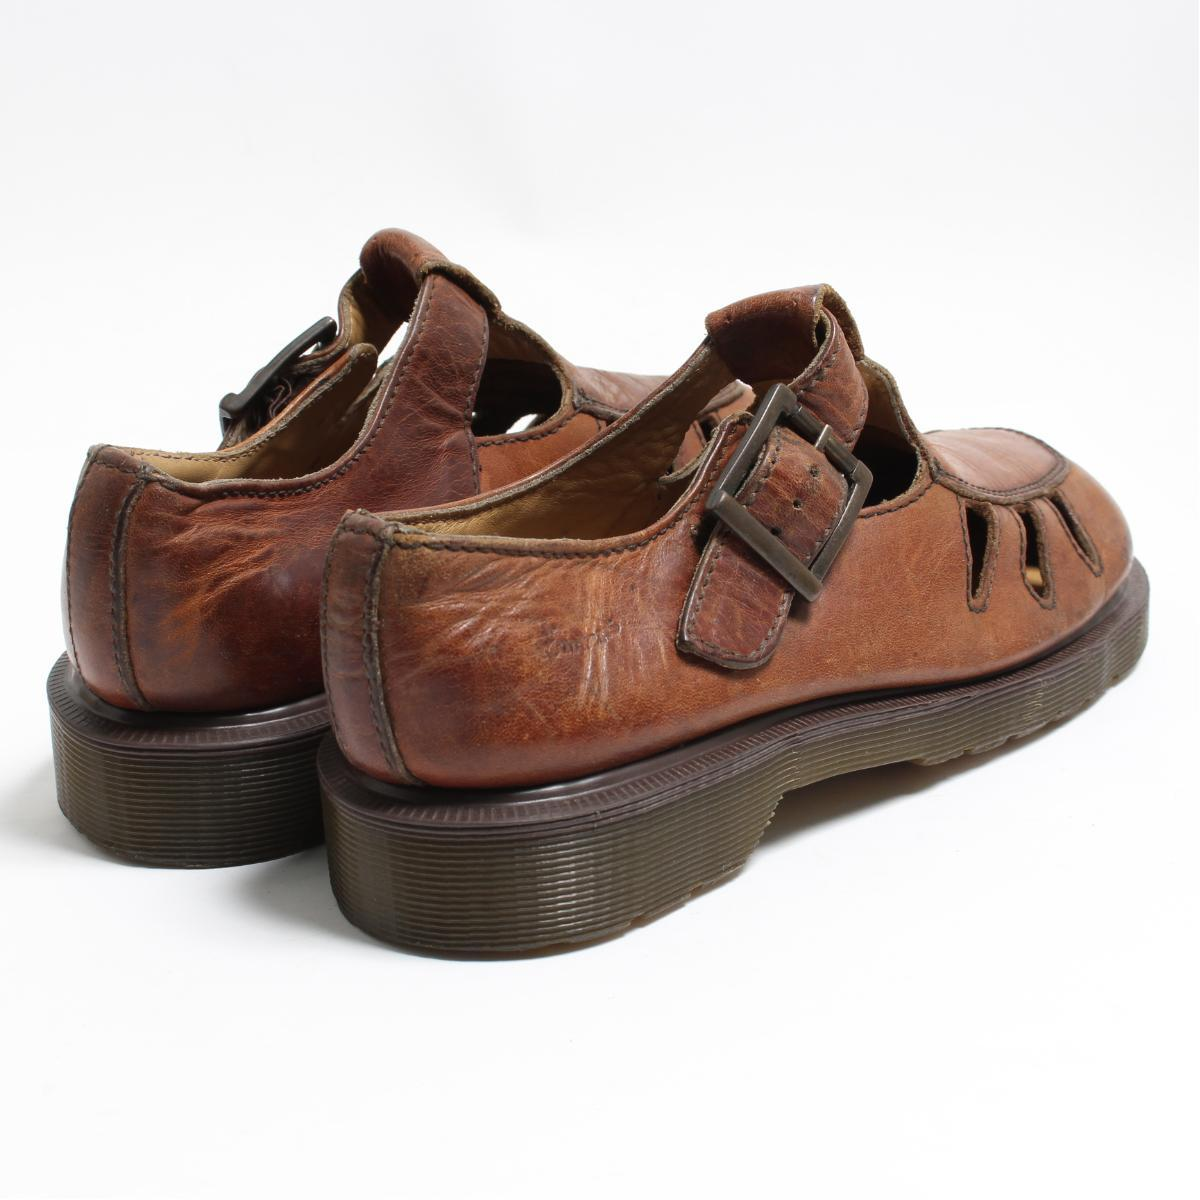 ... UK6 Lady's 24.5cm /bon2085 made in the doctor Martin Dr.Martens strap shoes ...